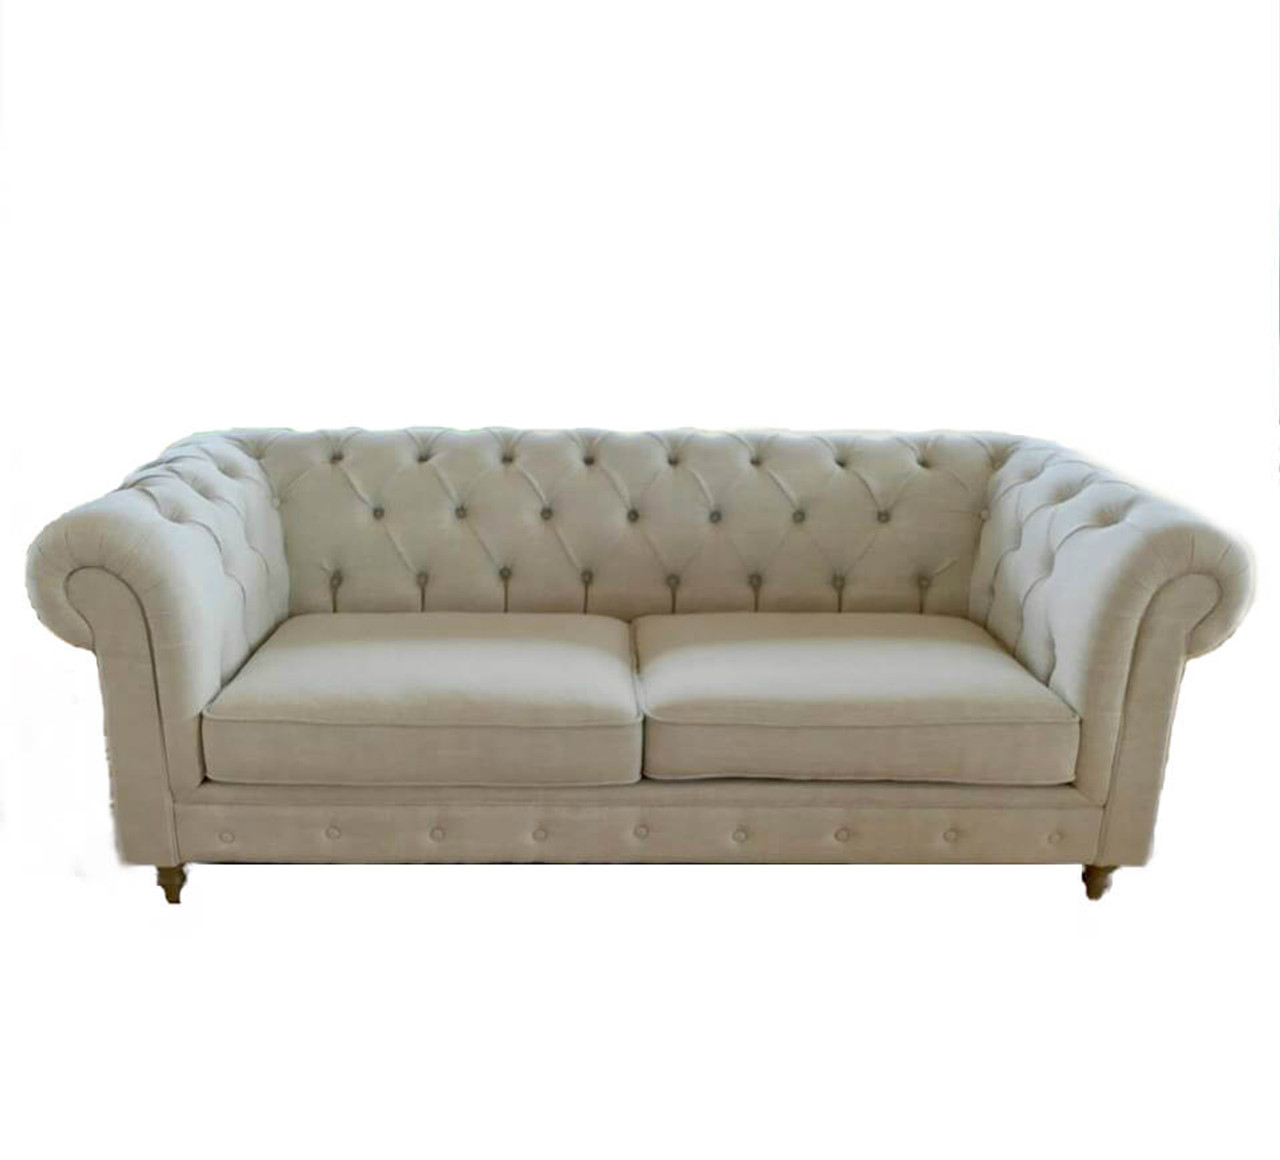 french linen tufted sofa indian set images hamptons chesterfield studded three seater couch off white 3 buttoned